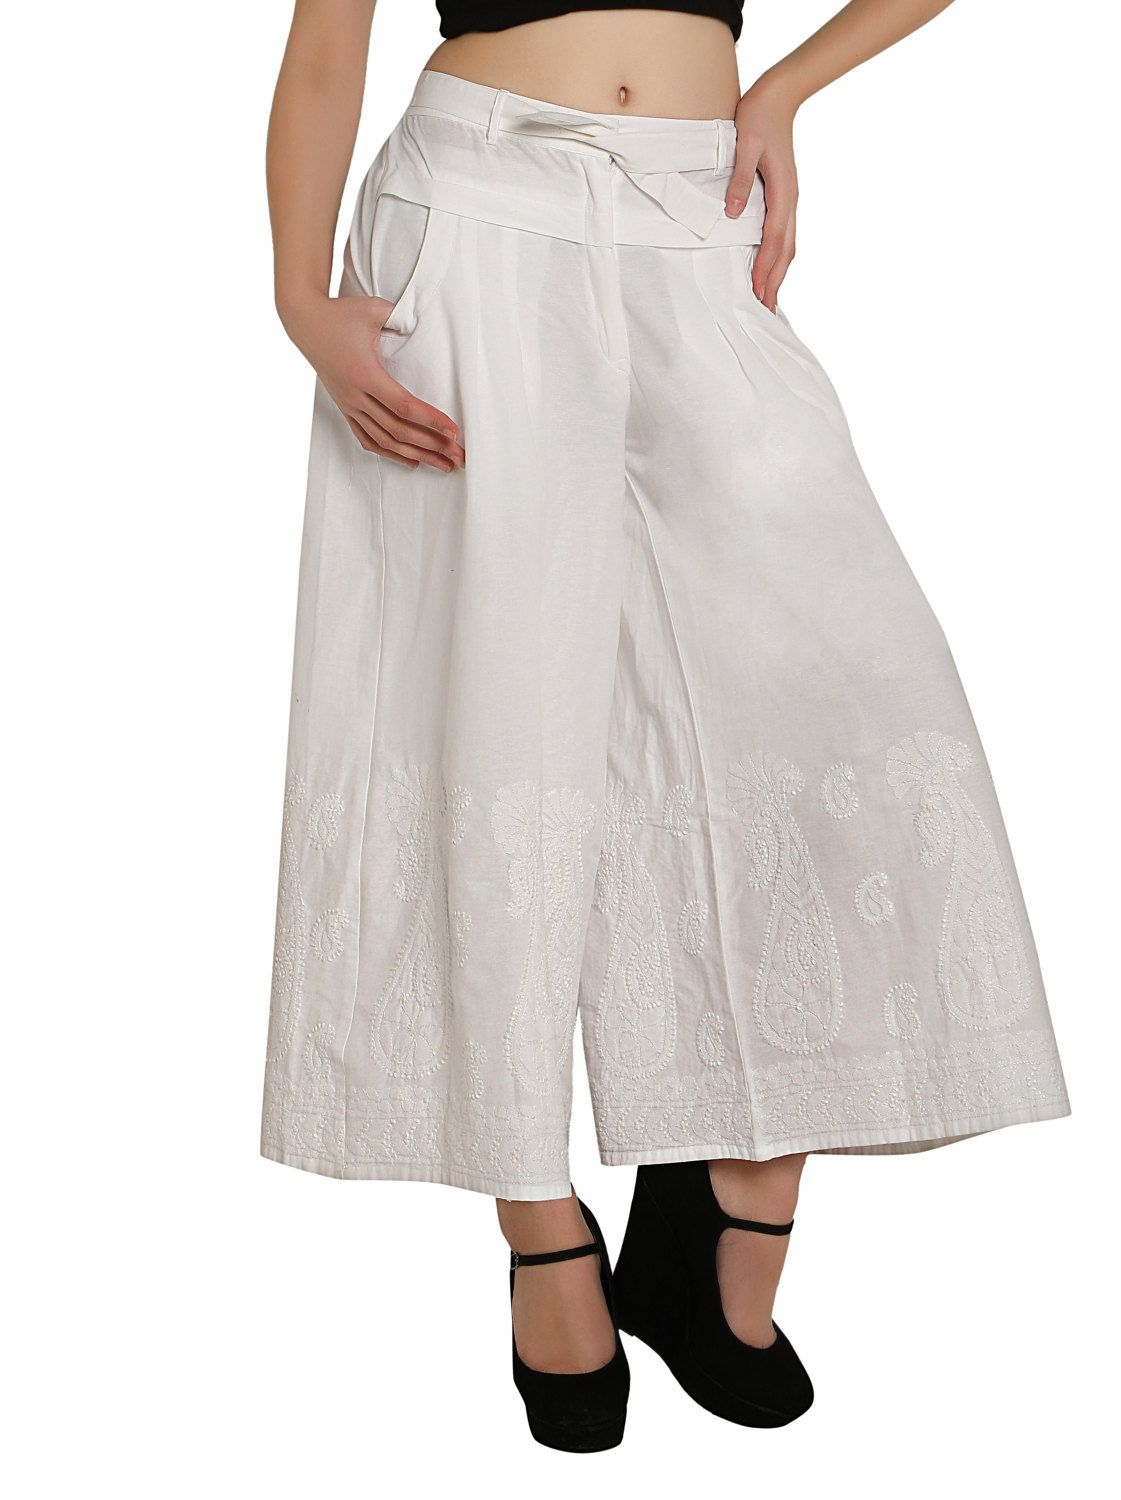 28632d21b2 Women harem pants trousers   salwar  palazzo chikankari hand embroidered  Boho hippie retro for   ladies   girls Indian Bollywood white by  Indiankala4u on ...